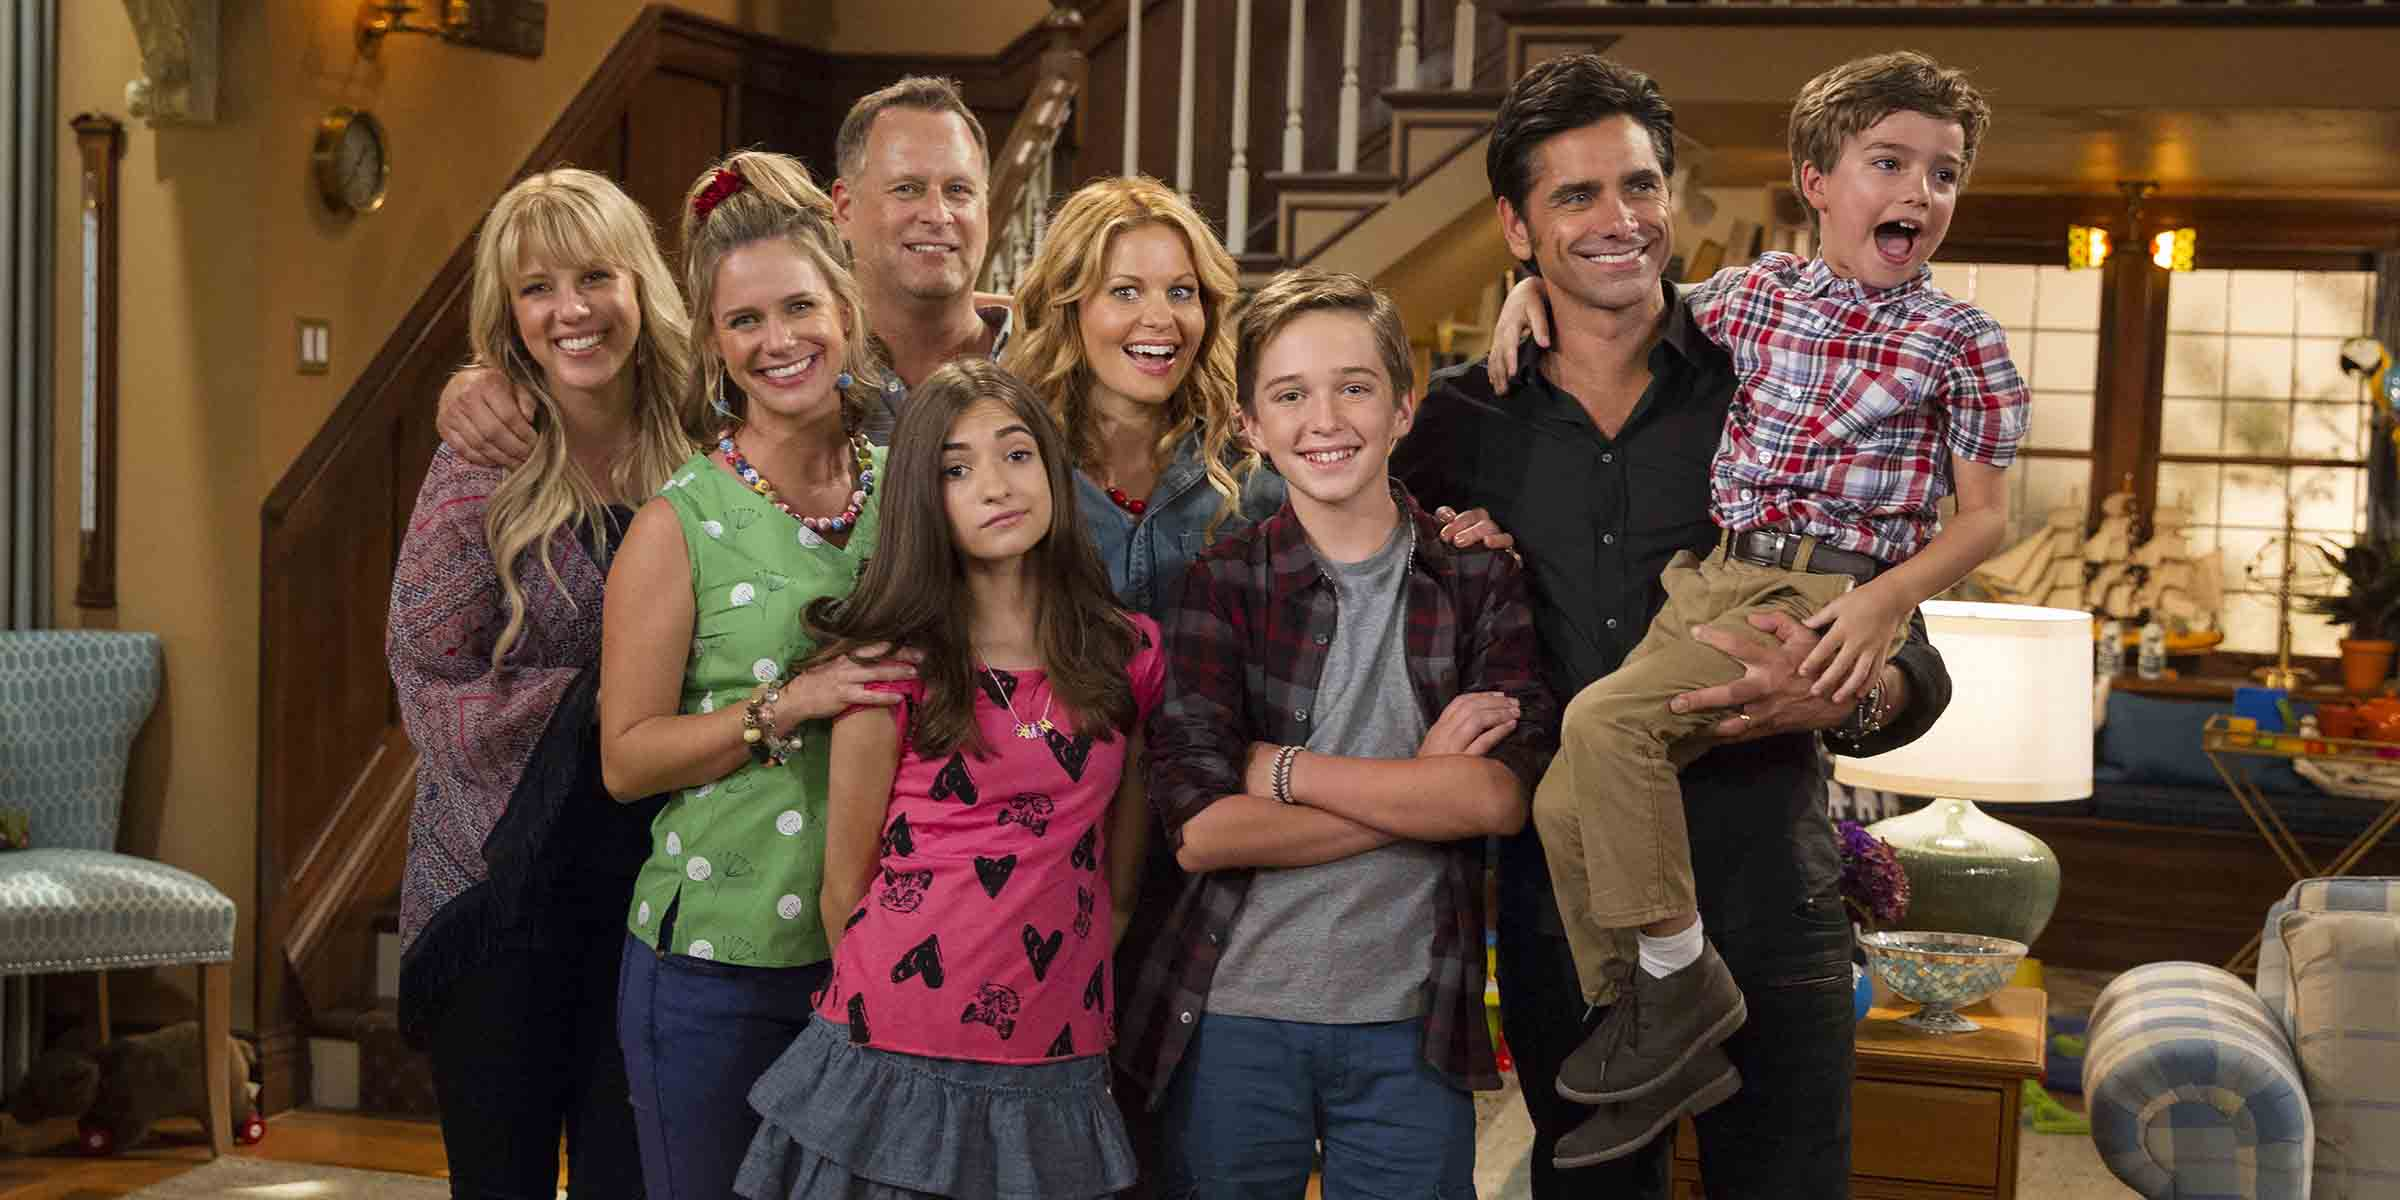 Fuller House, Fuller House Season 6 Release Date And What Is Storyline?